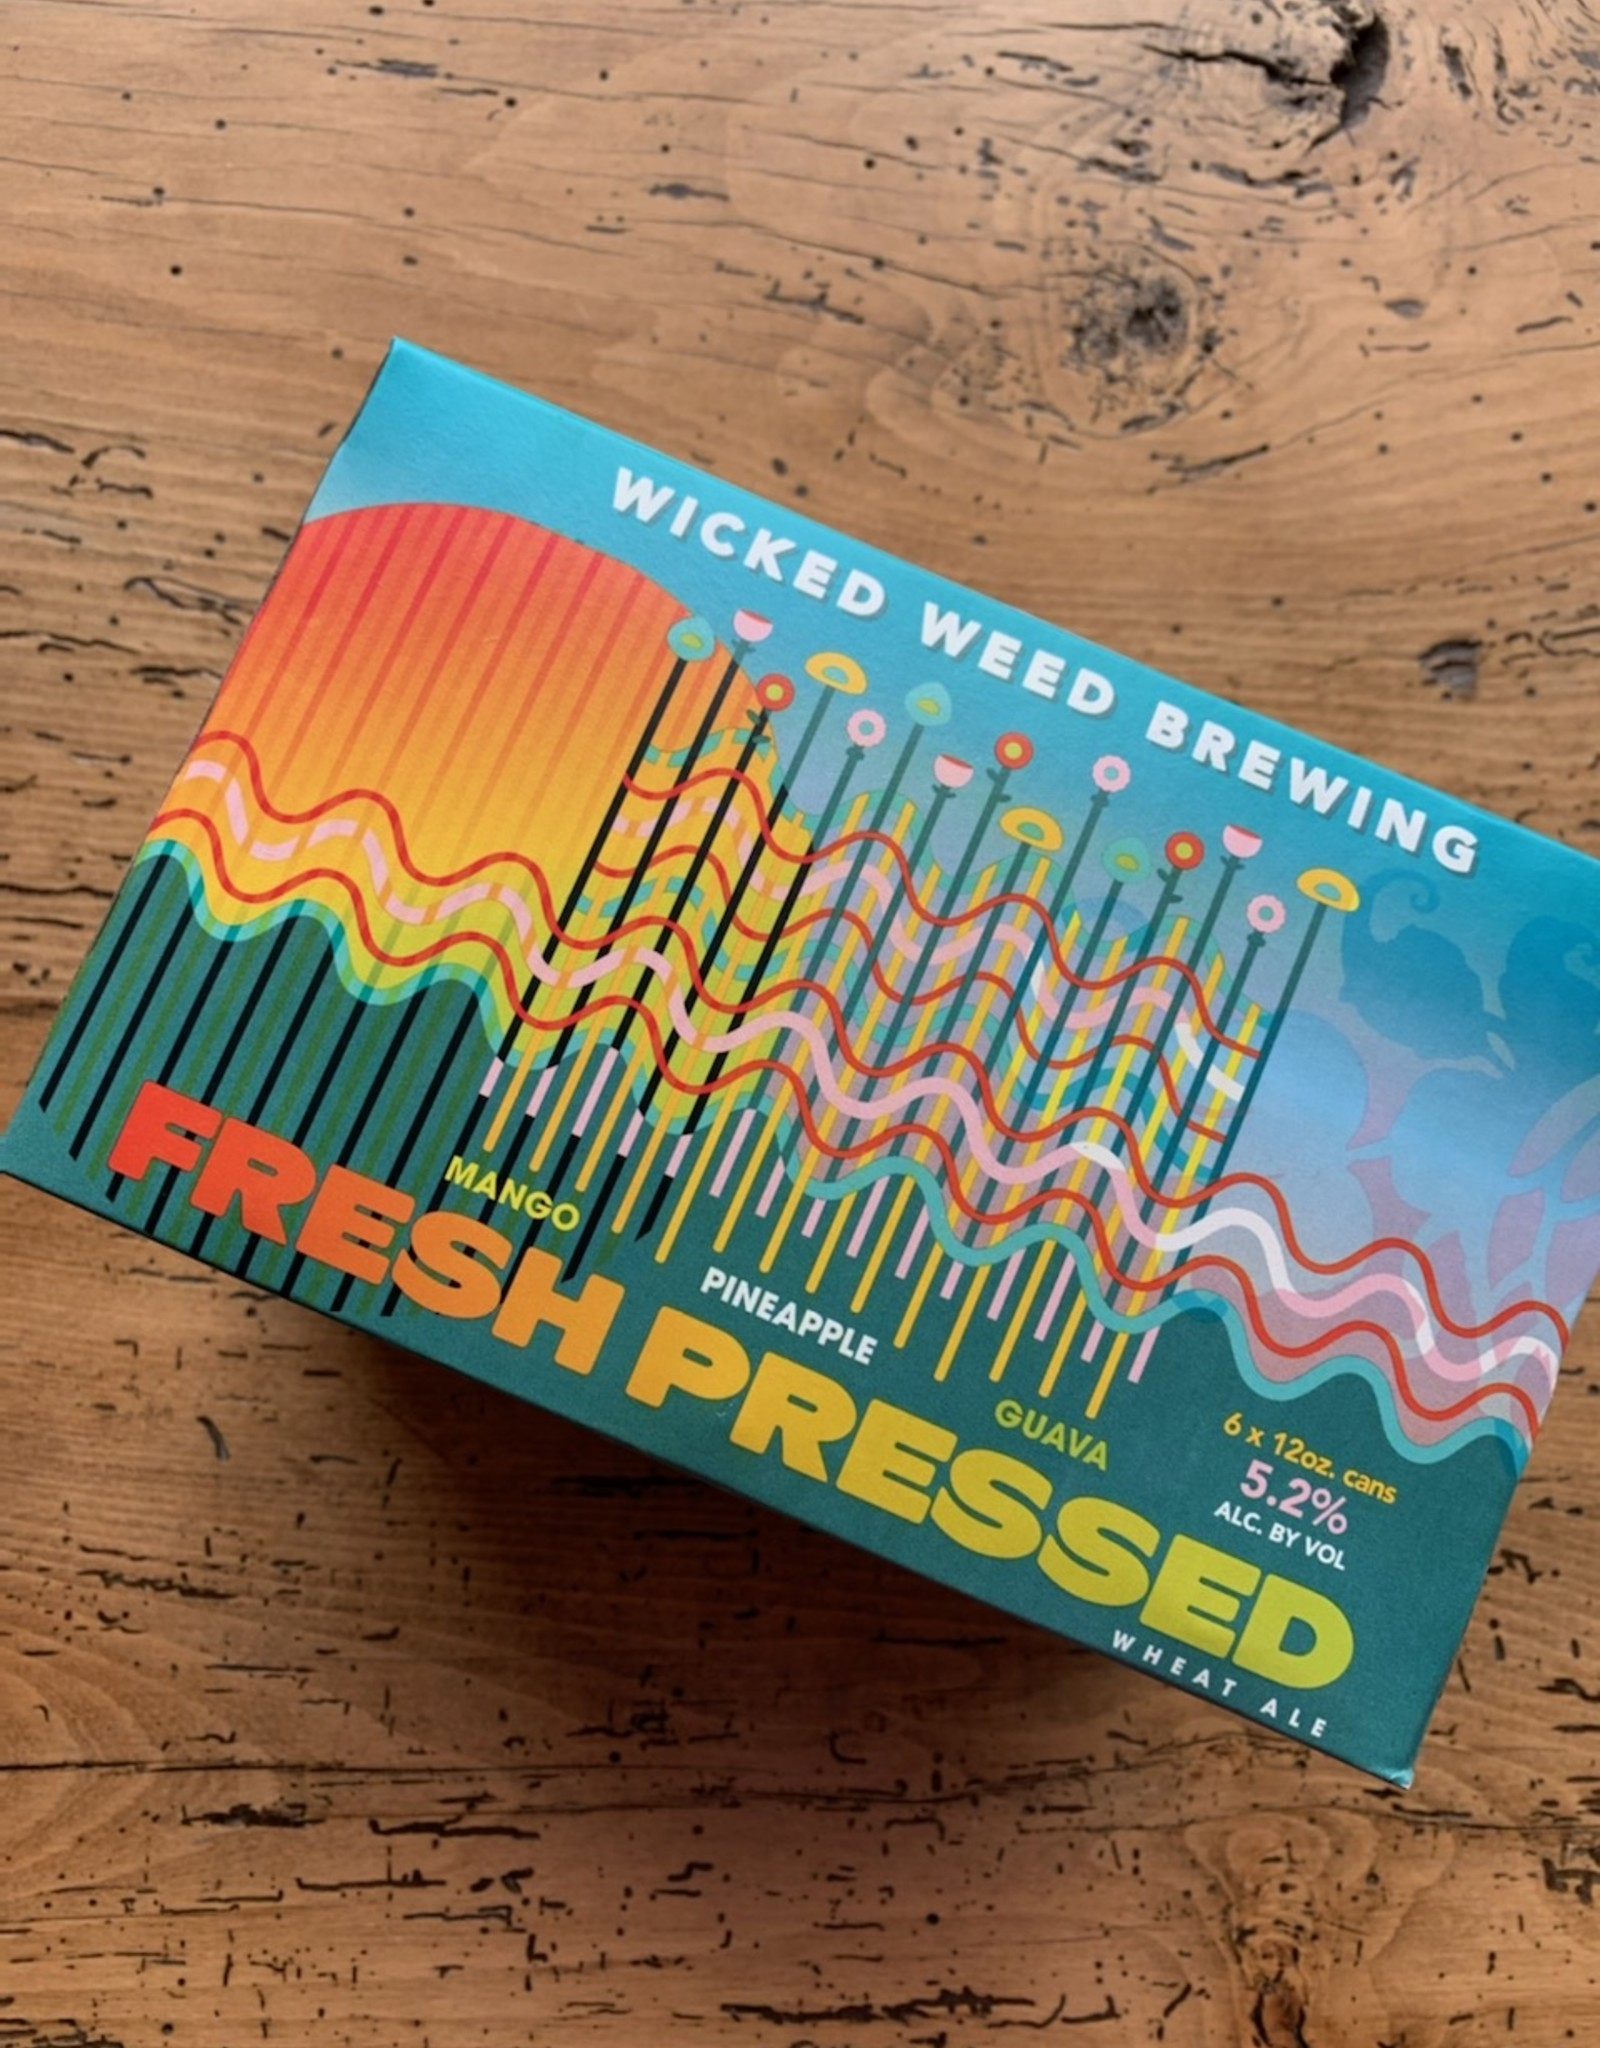 Wicked Weed Fresh Pressed Wheat Ale 6pk